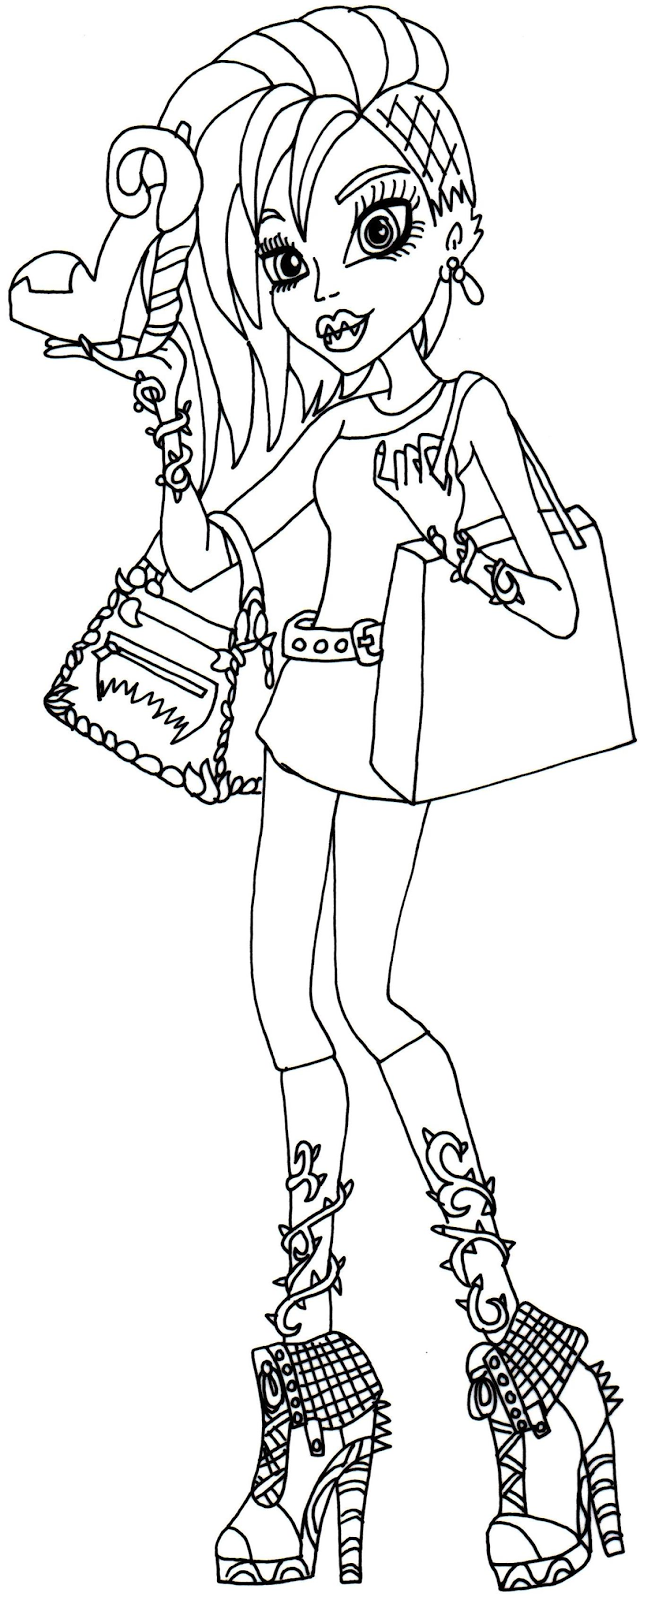 Free printable monster high coloring pages april 2014 for Monster high printables coloring pages